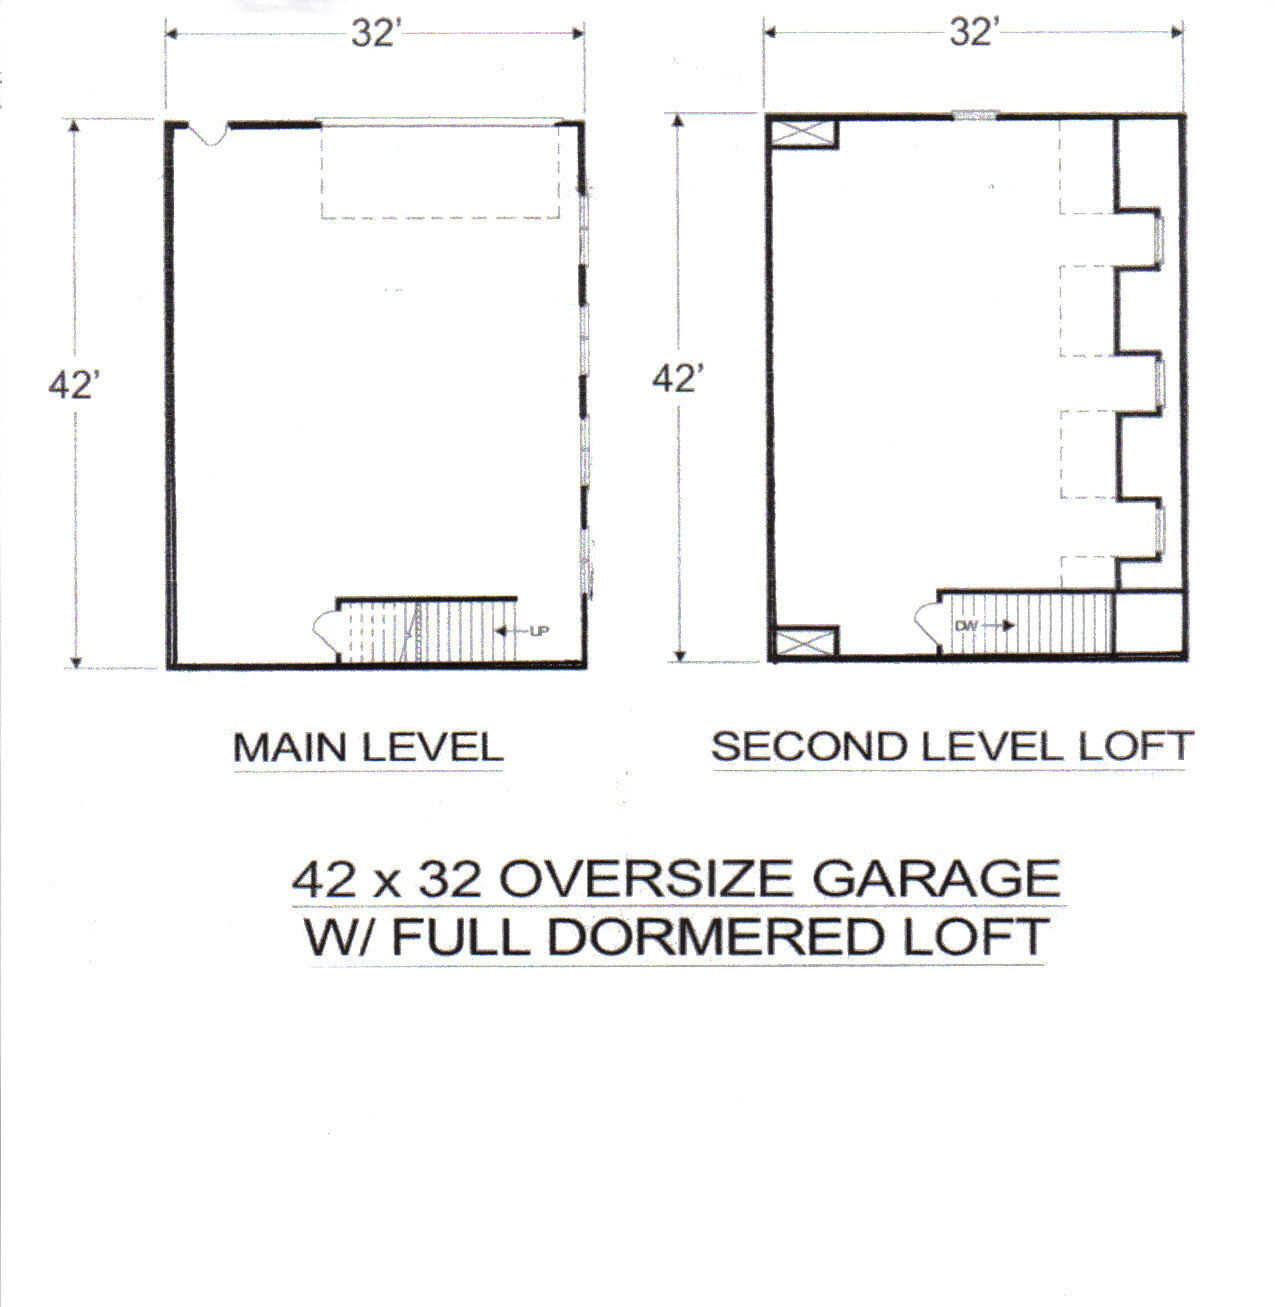 42 x 32 OverGrößed 3 - - - 4 stall Garage with DormeROT Loft Building Blauprint Plans 318f32